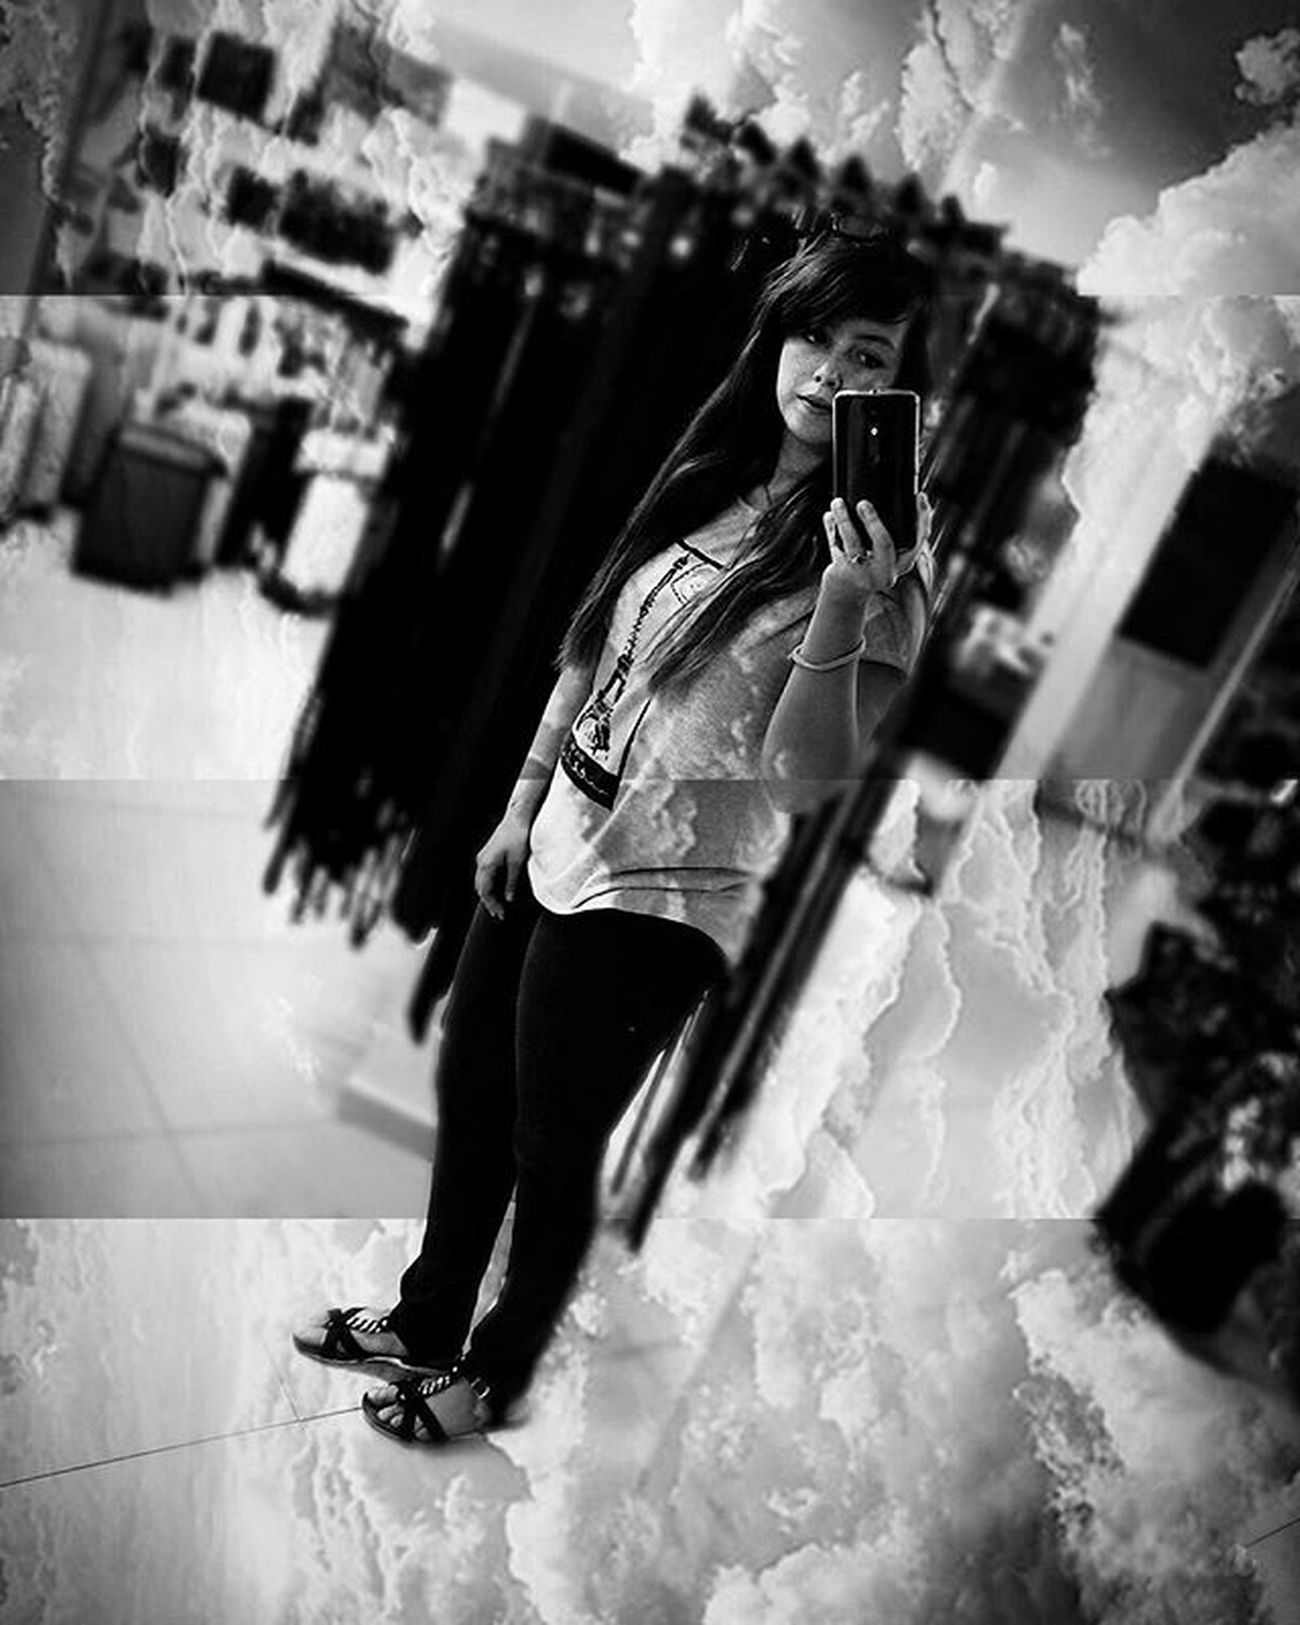 Selfie Shop Boredom Clickfor5kfollows Clickfor500gains Hitfor100follows Hitfor100fans Igers Smile Blackandwhite Work Photography Me Motorola Phonecamera Likeforlike Followme Takingphotos Inside Throwback